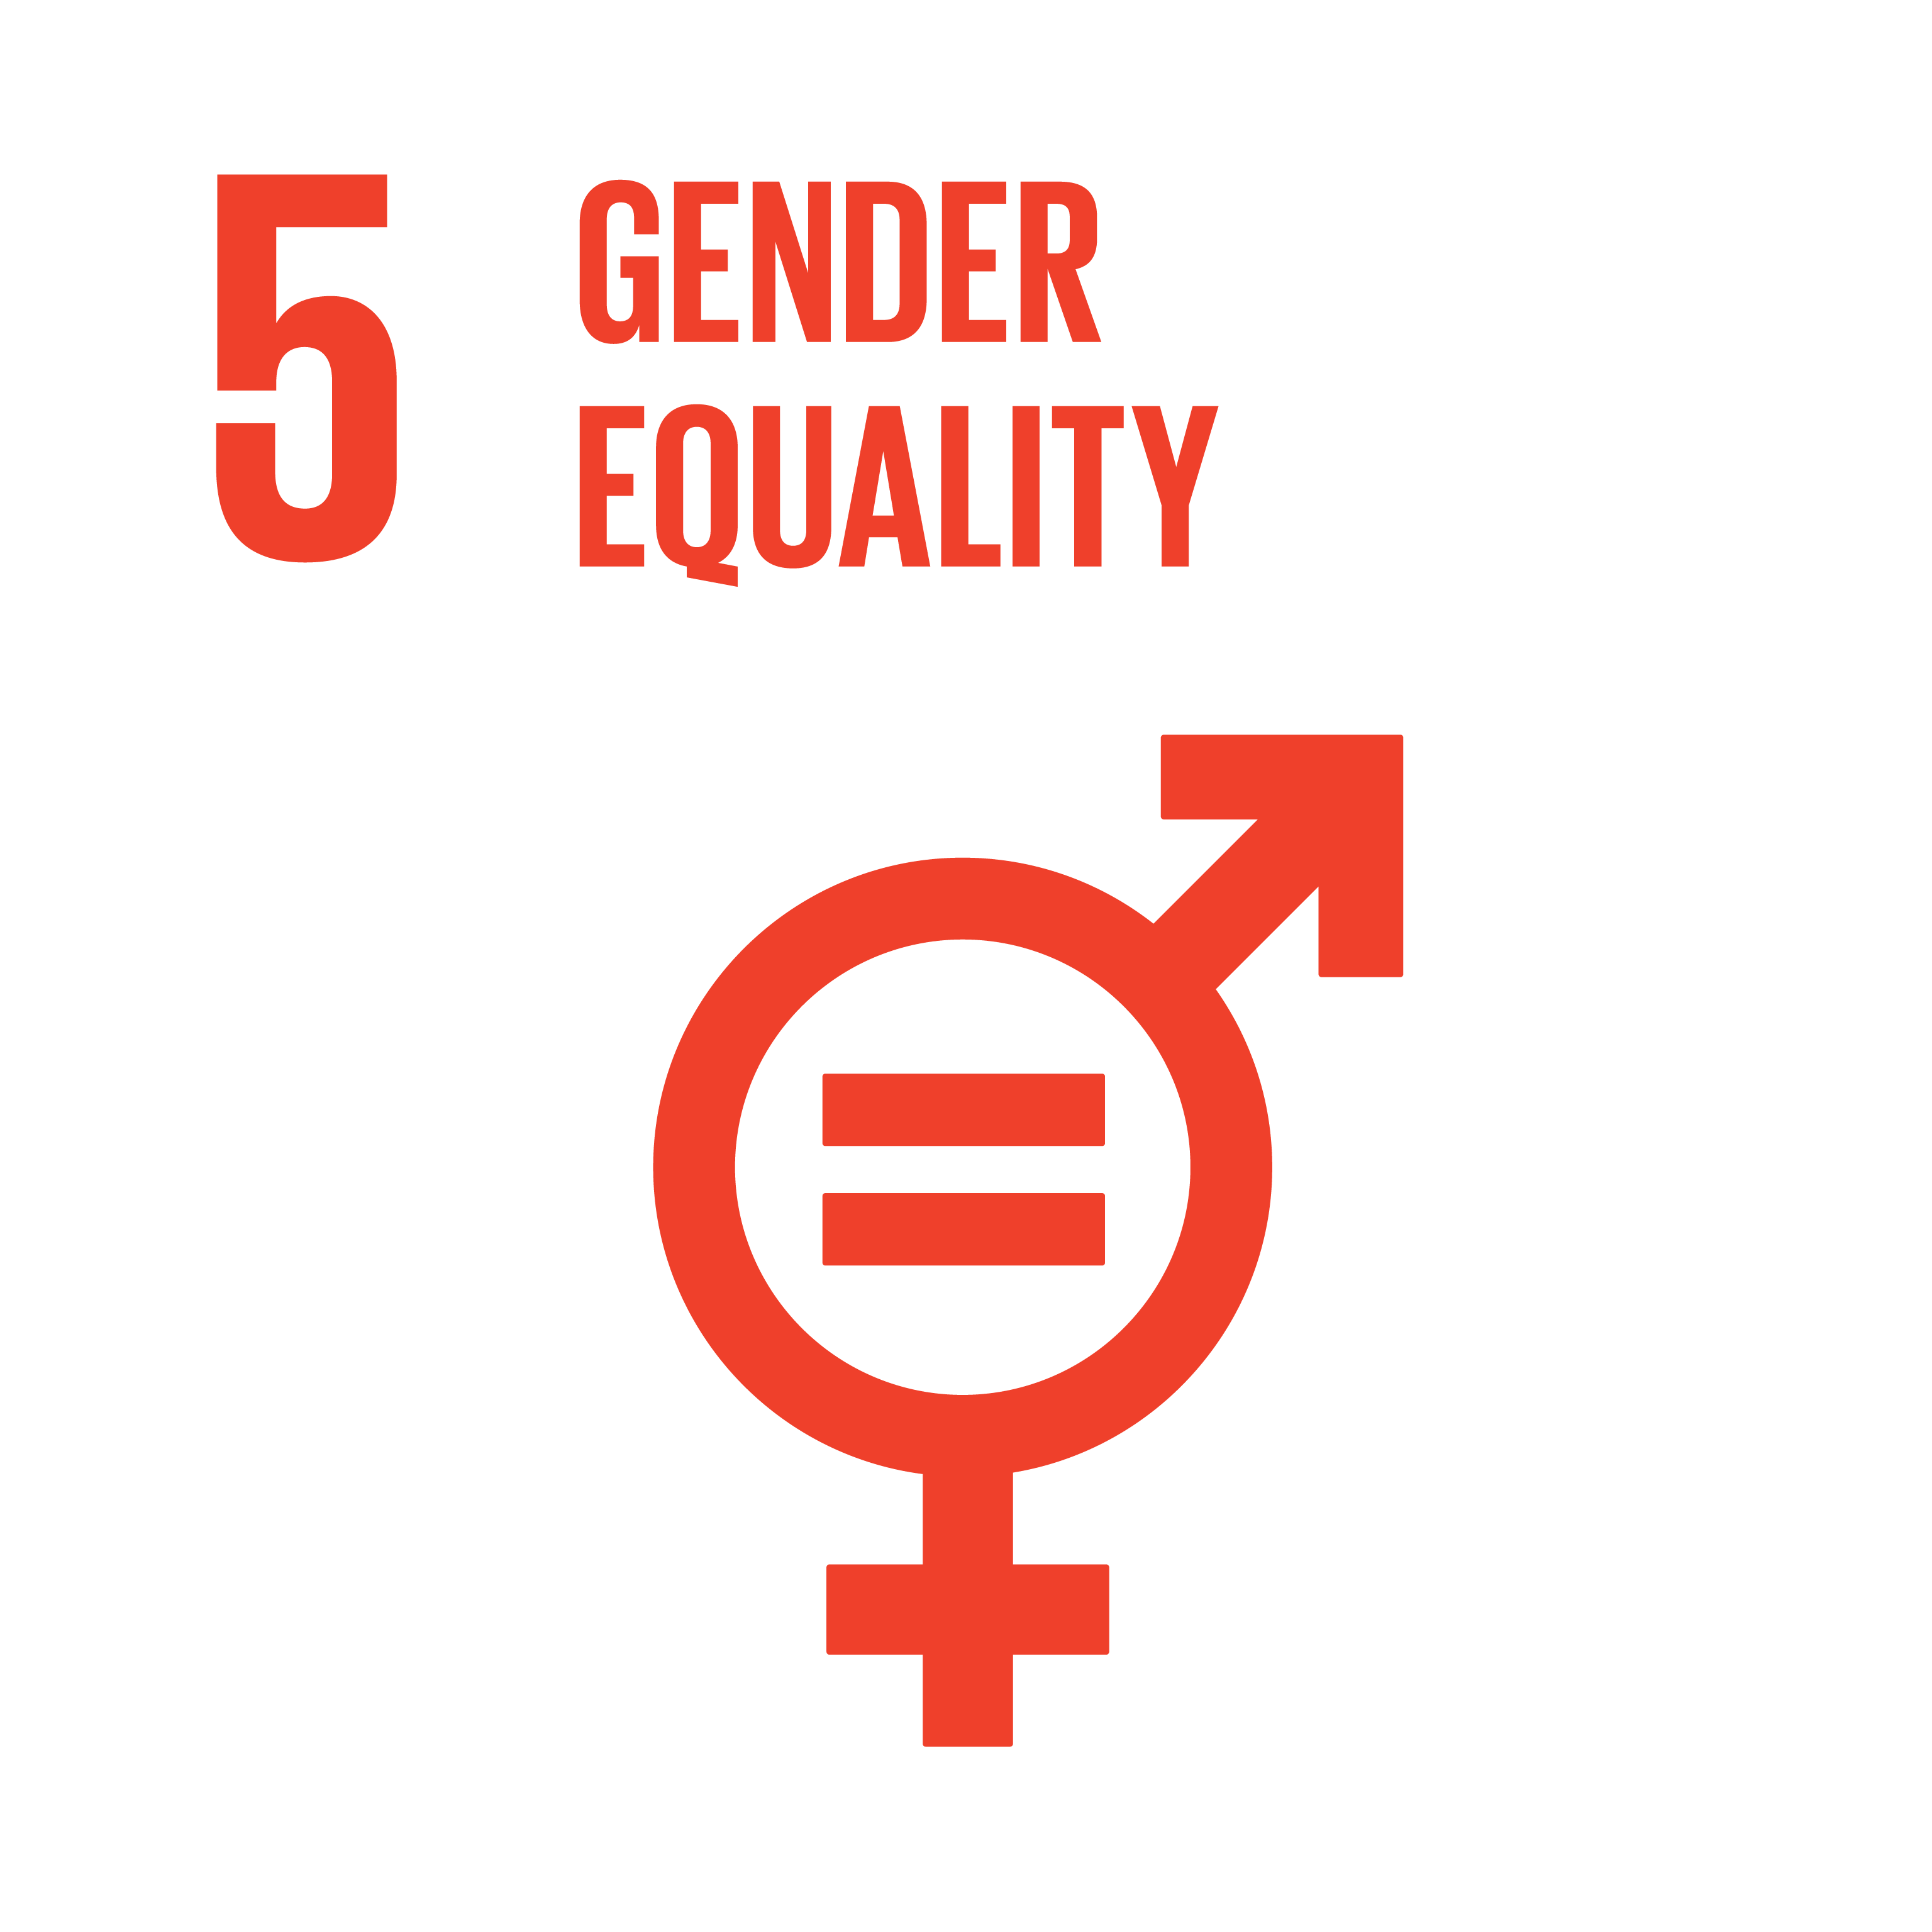 E_INVERTED SDG goals_icons-individual-RGB-05